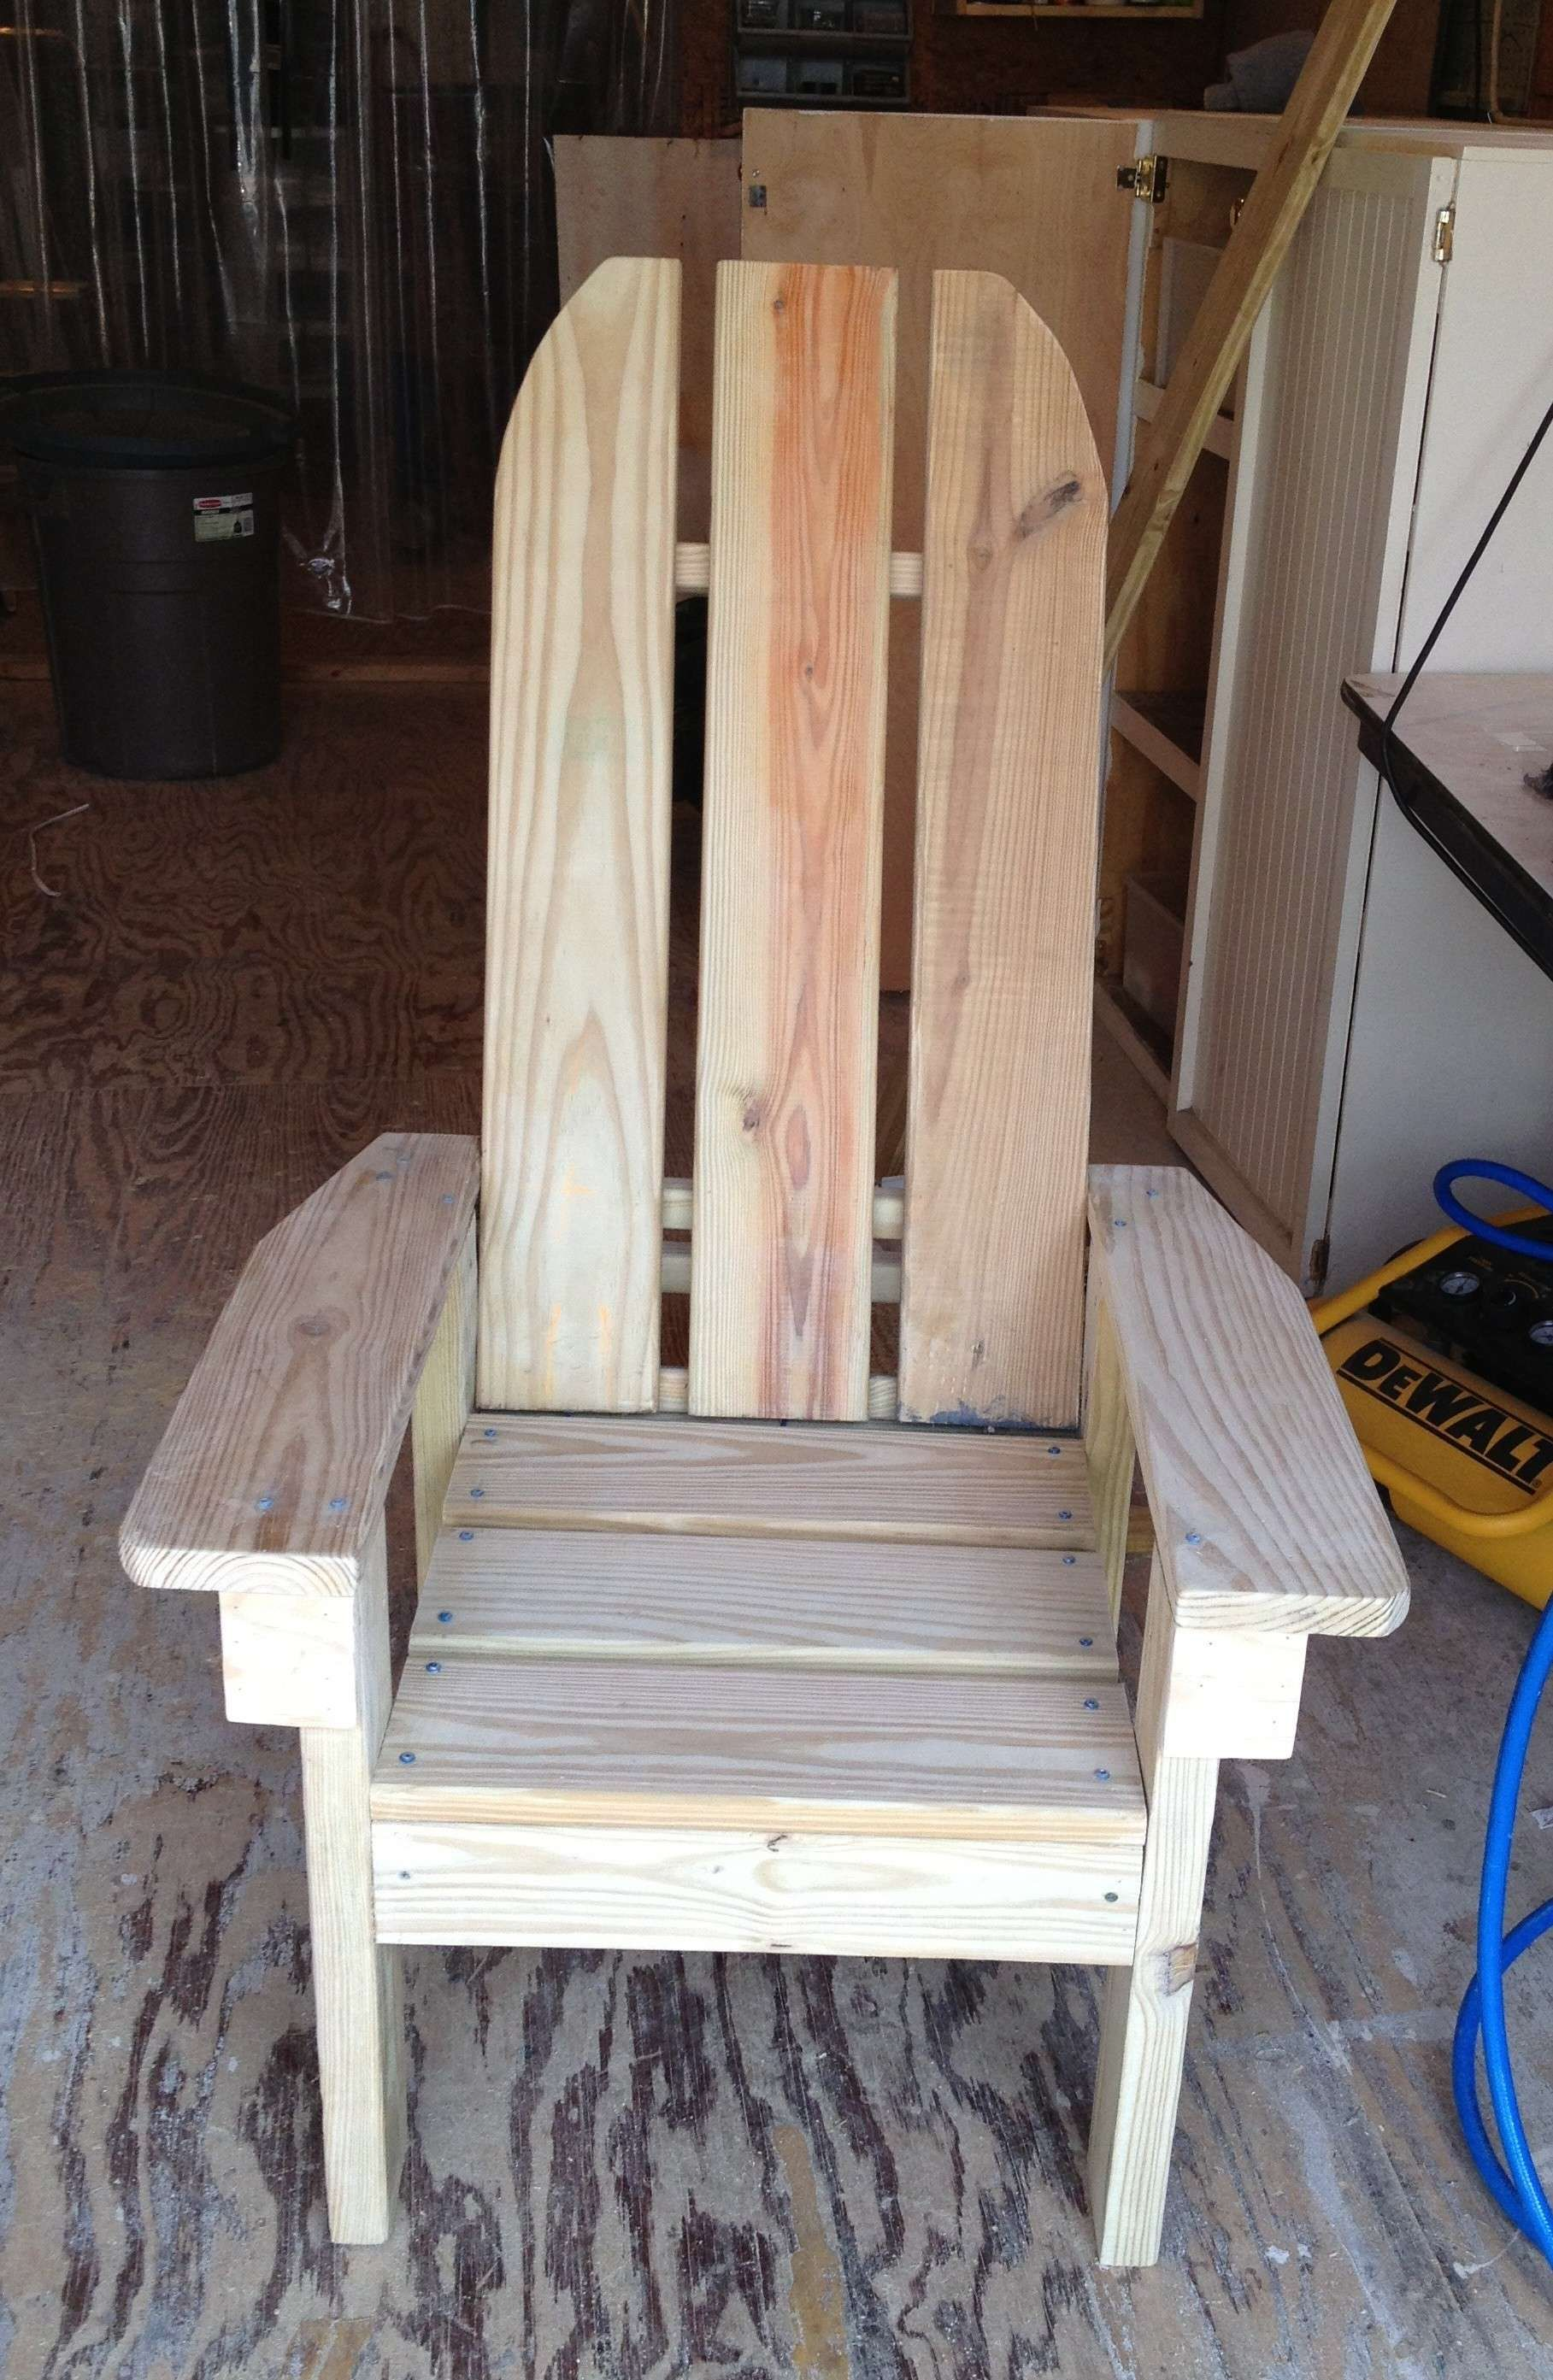 Fresh 2x4 Adirondack Chair Plans (With images